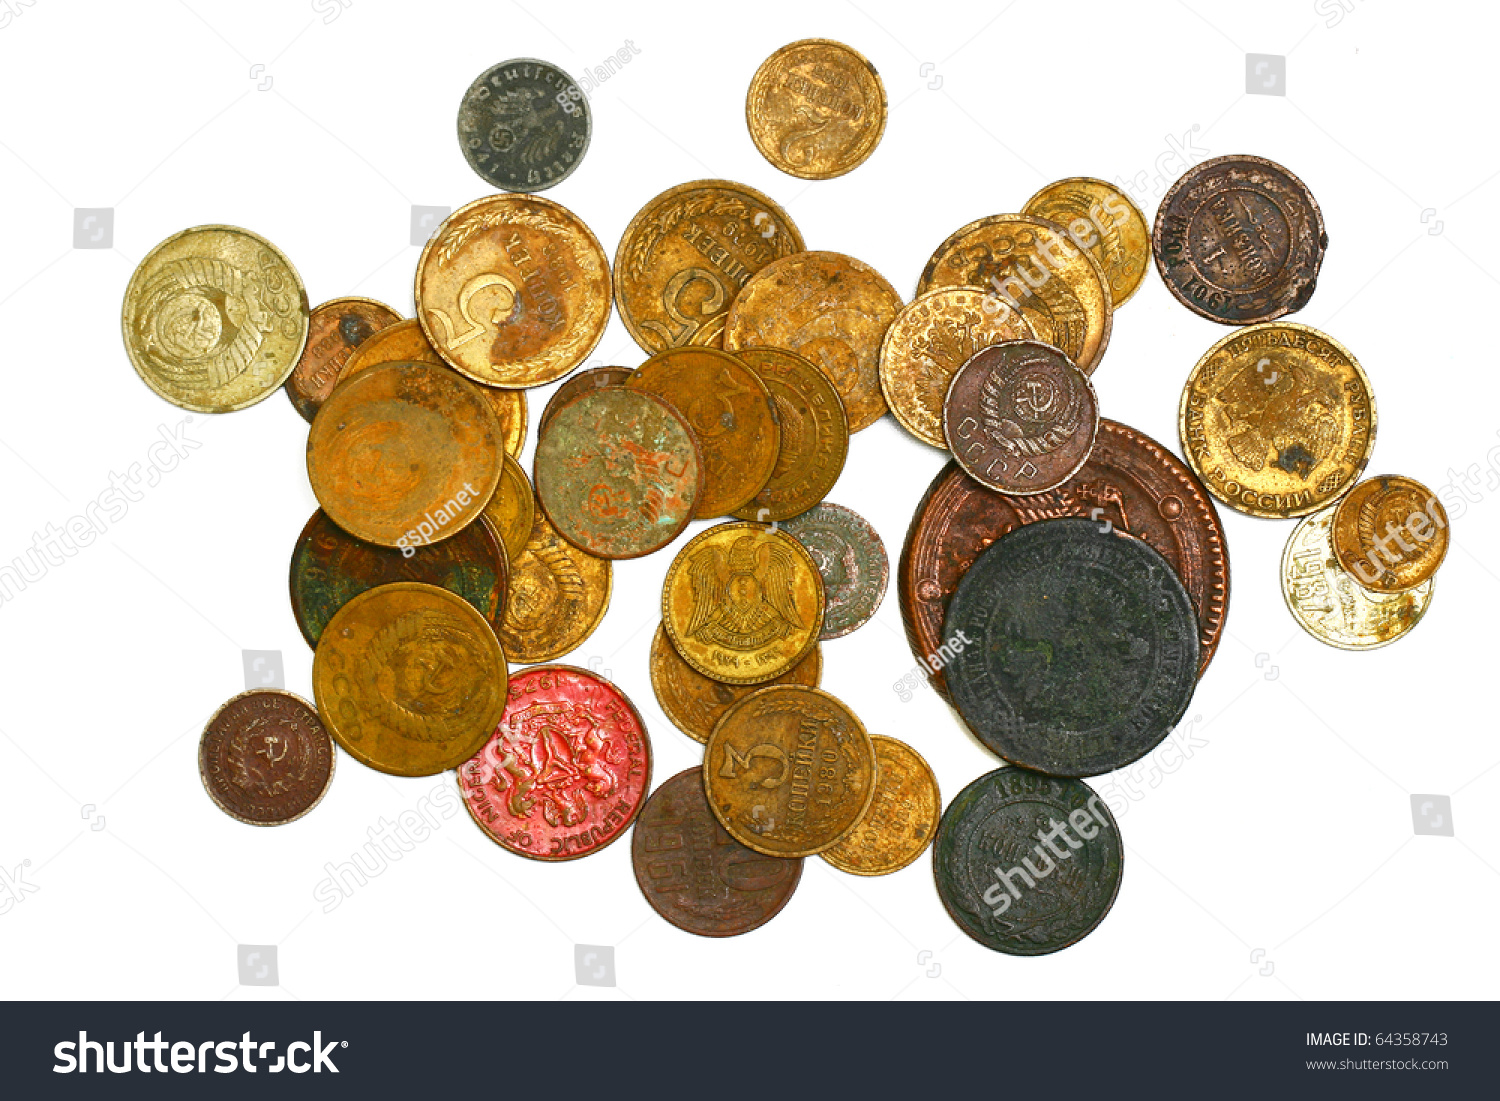 old coins stock image - photo #14